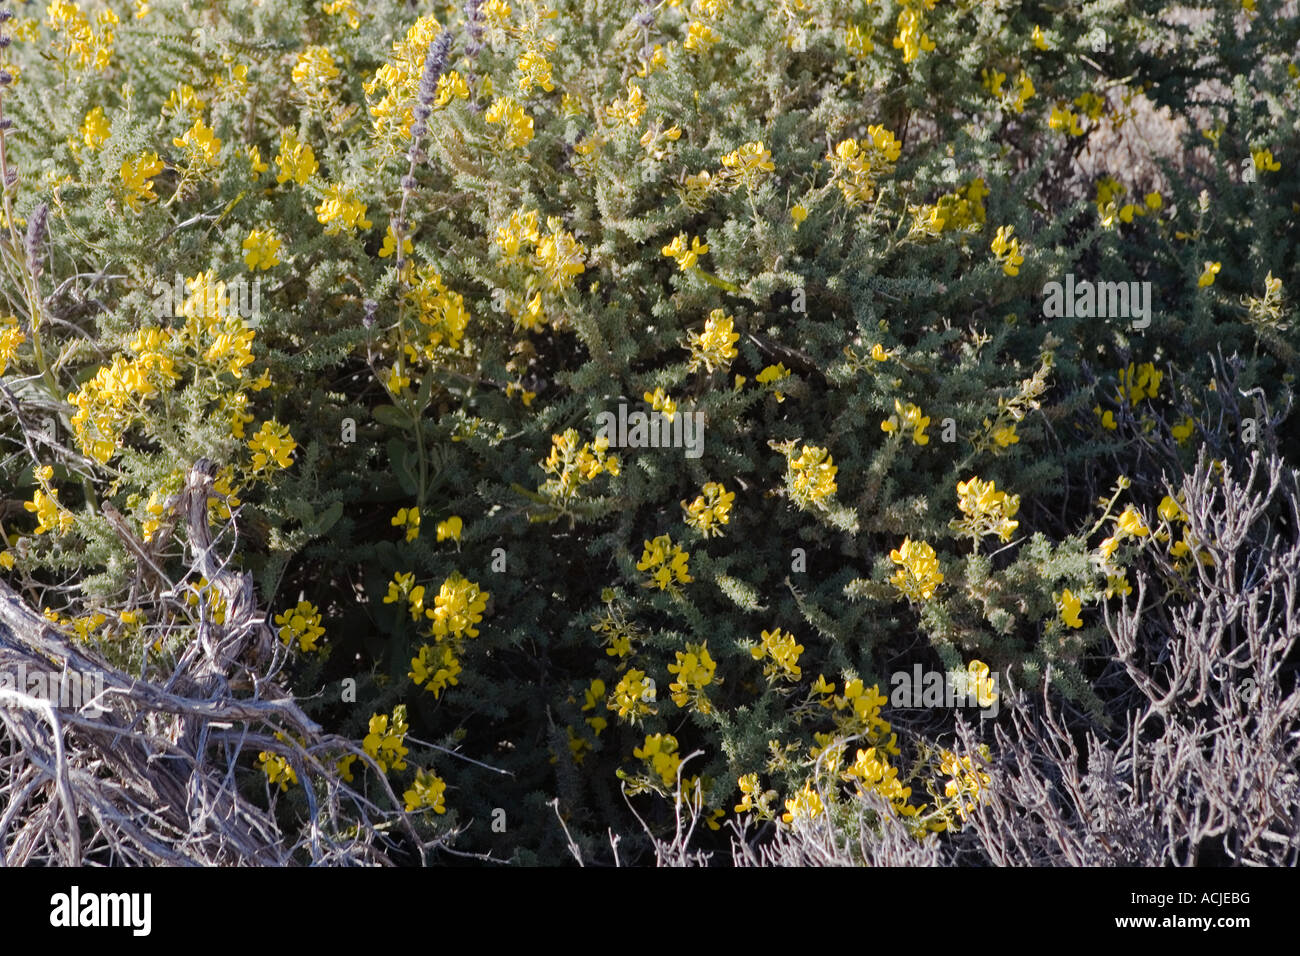 Small Shrub With Yellow Flowers Stock Photo 13169763 Alamy